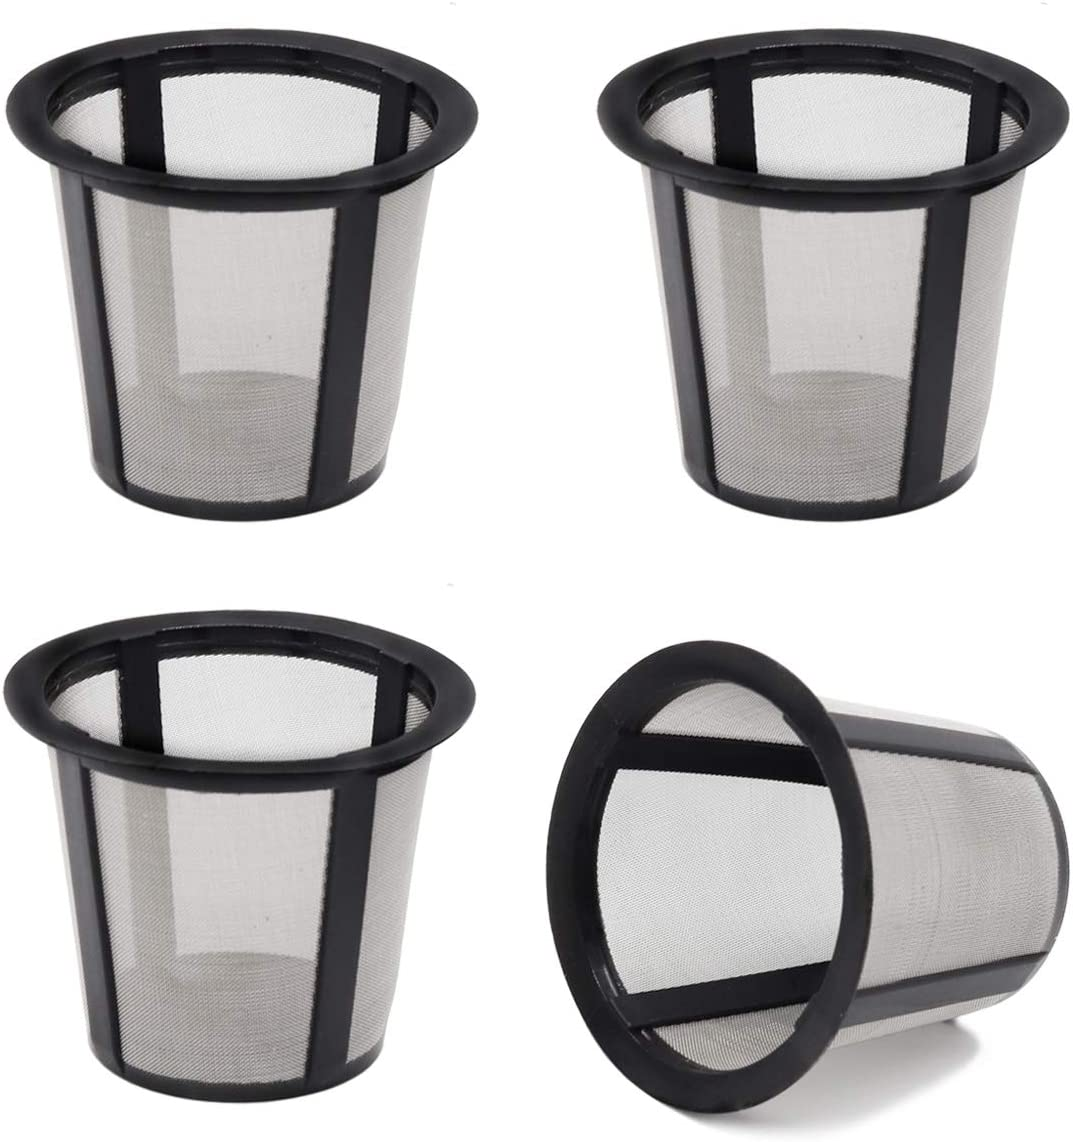 Replaceable Coffee Filter Screen Cup (4 Pieces) for use with the Reusable Coffee Filter Sets which are Compatible with Keurig 1.0 Brewers